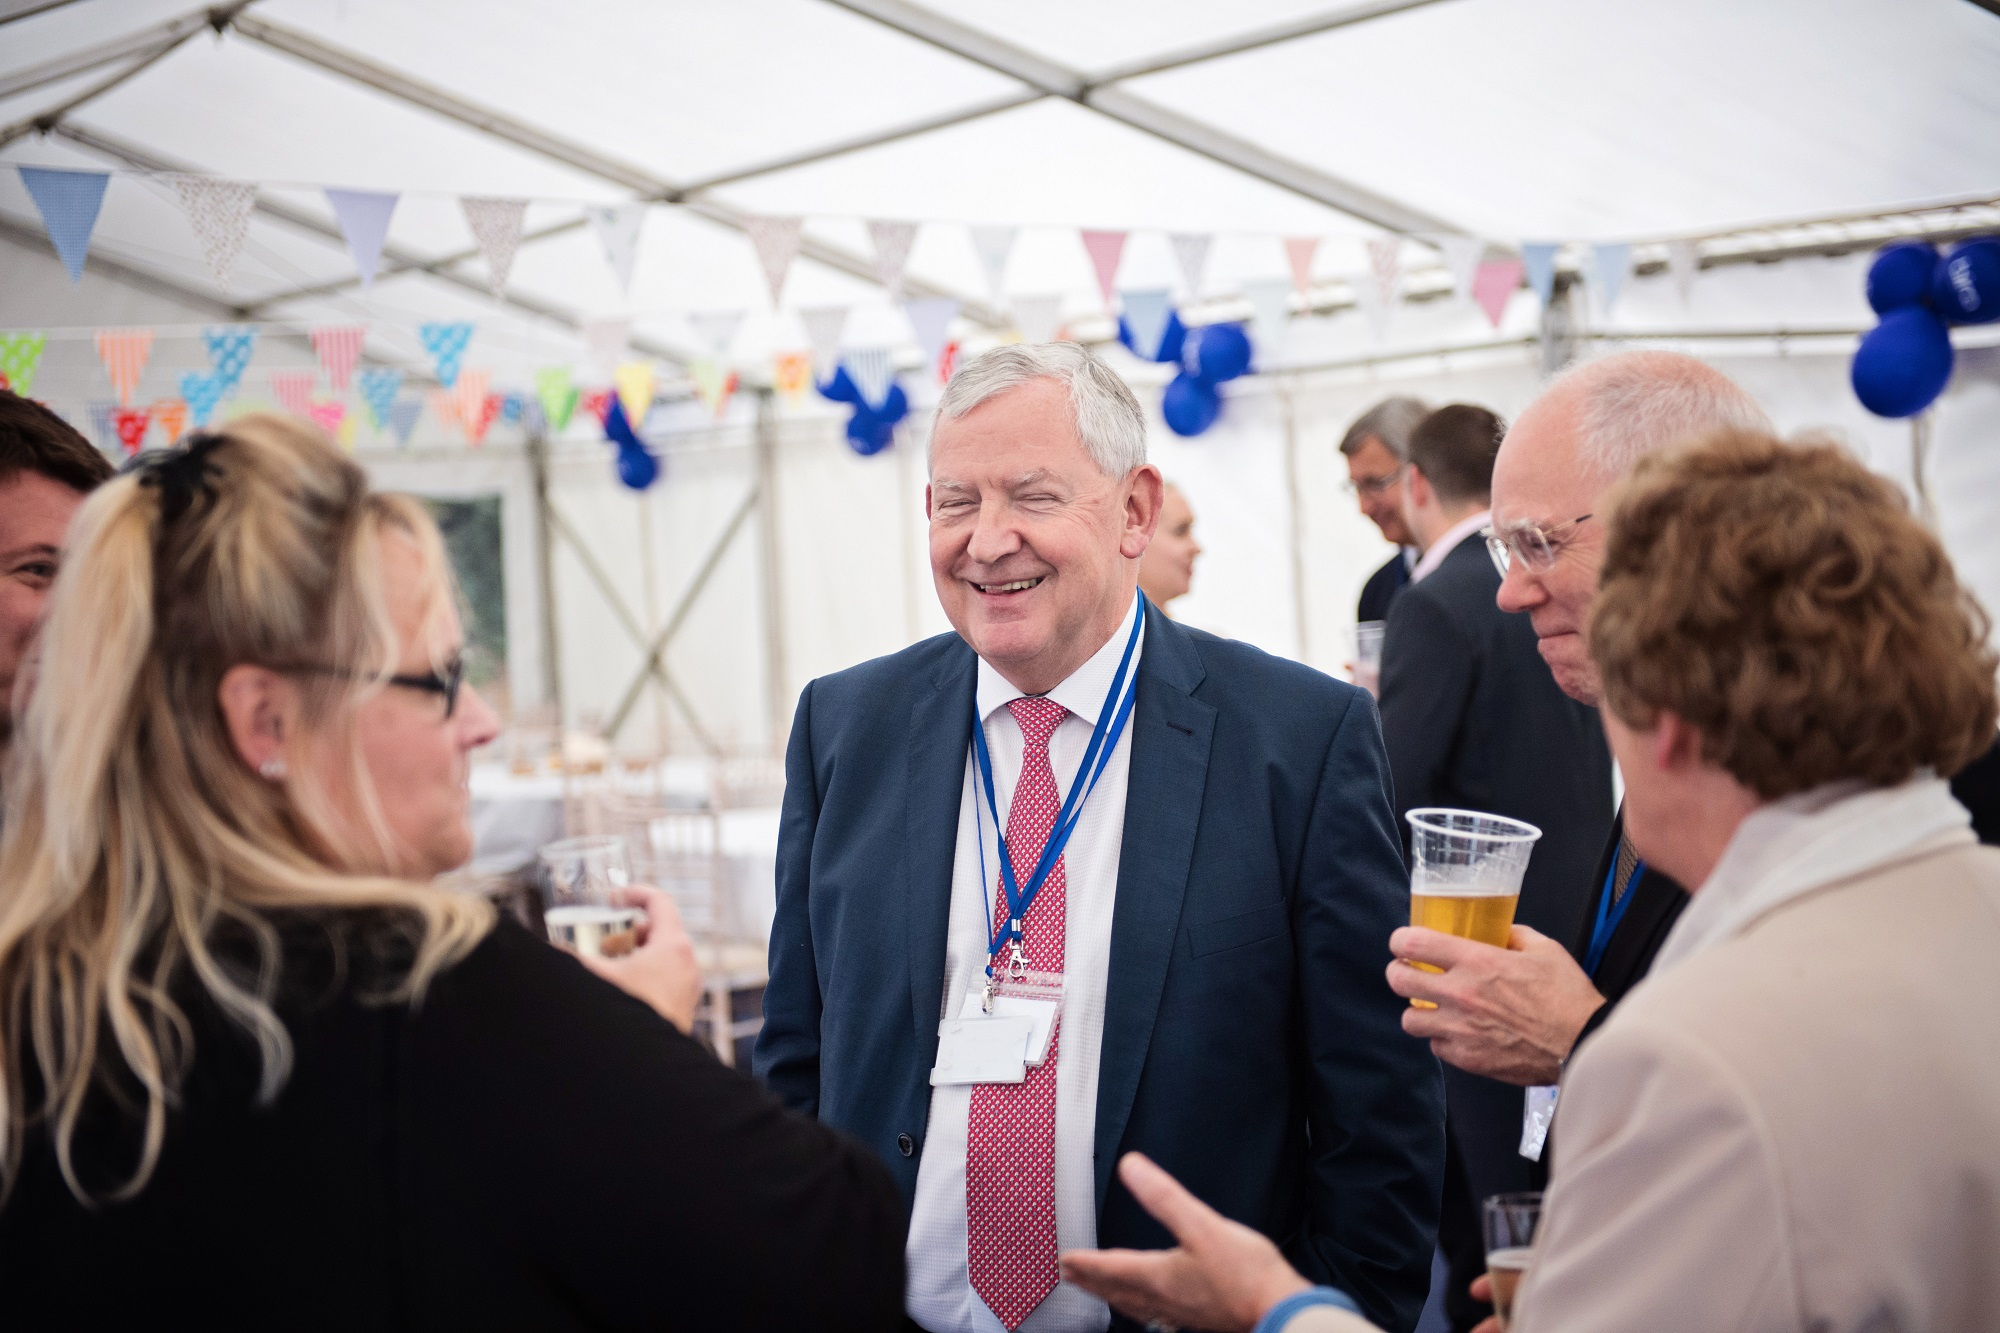 CEO Alan Hawkins ready for retirement after working for 33 years at bira - British Independent Retailers Association.